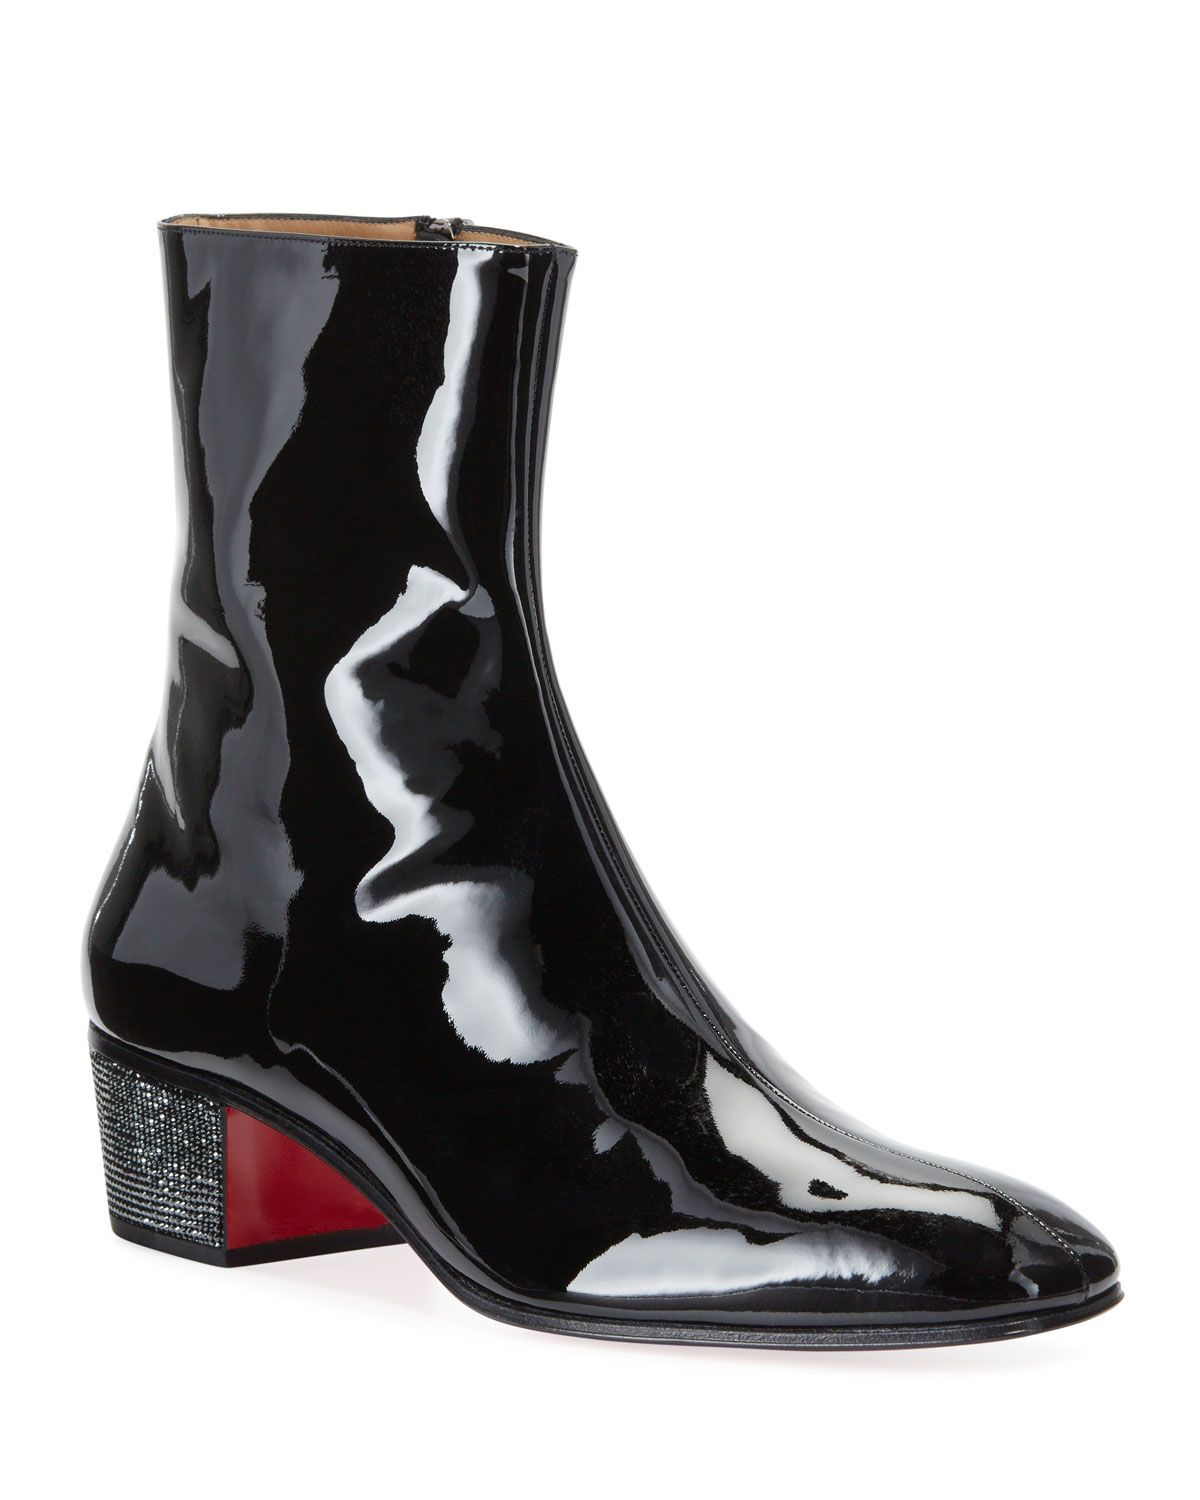 PALACE CRYSTAL PATENT RED SOLE BOOTS